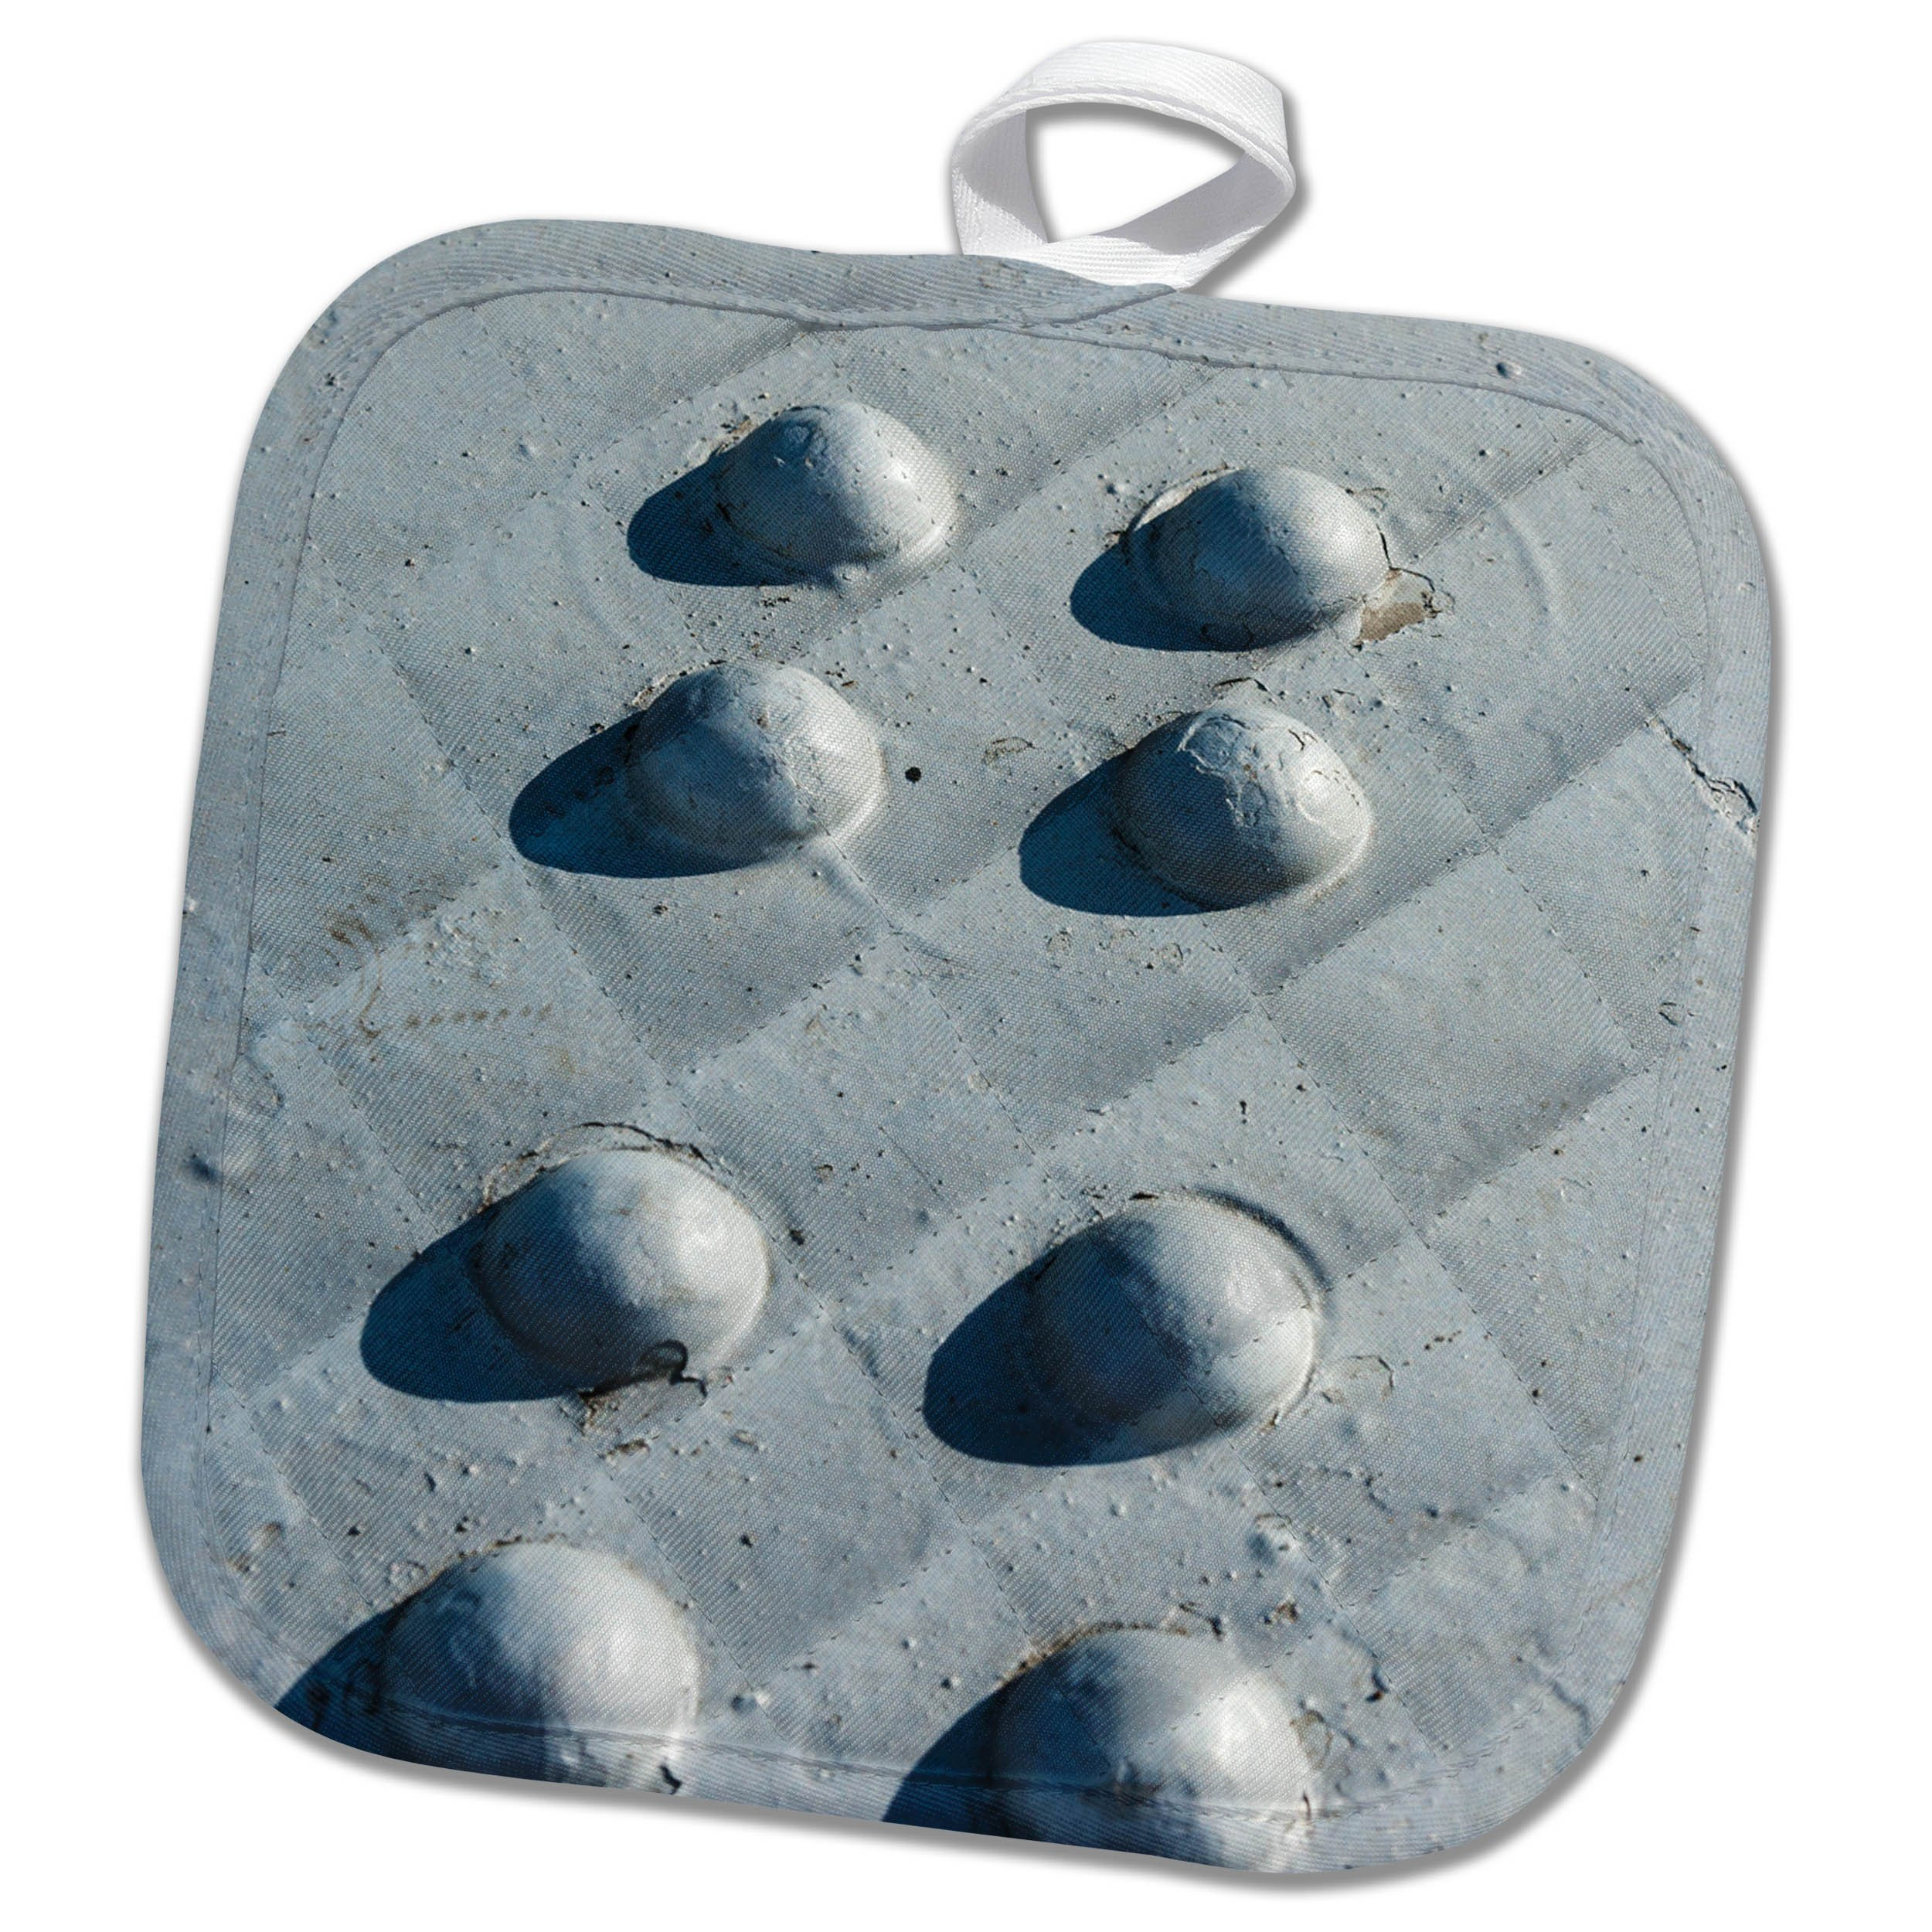 3dRose Alexis Photography - Texture Metal - Sunlit metal texture with eight rivets painted gray - 8x8 Potholder (phl_271988_1)